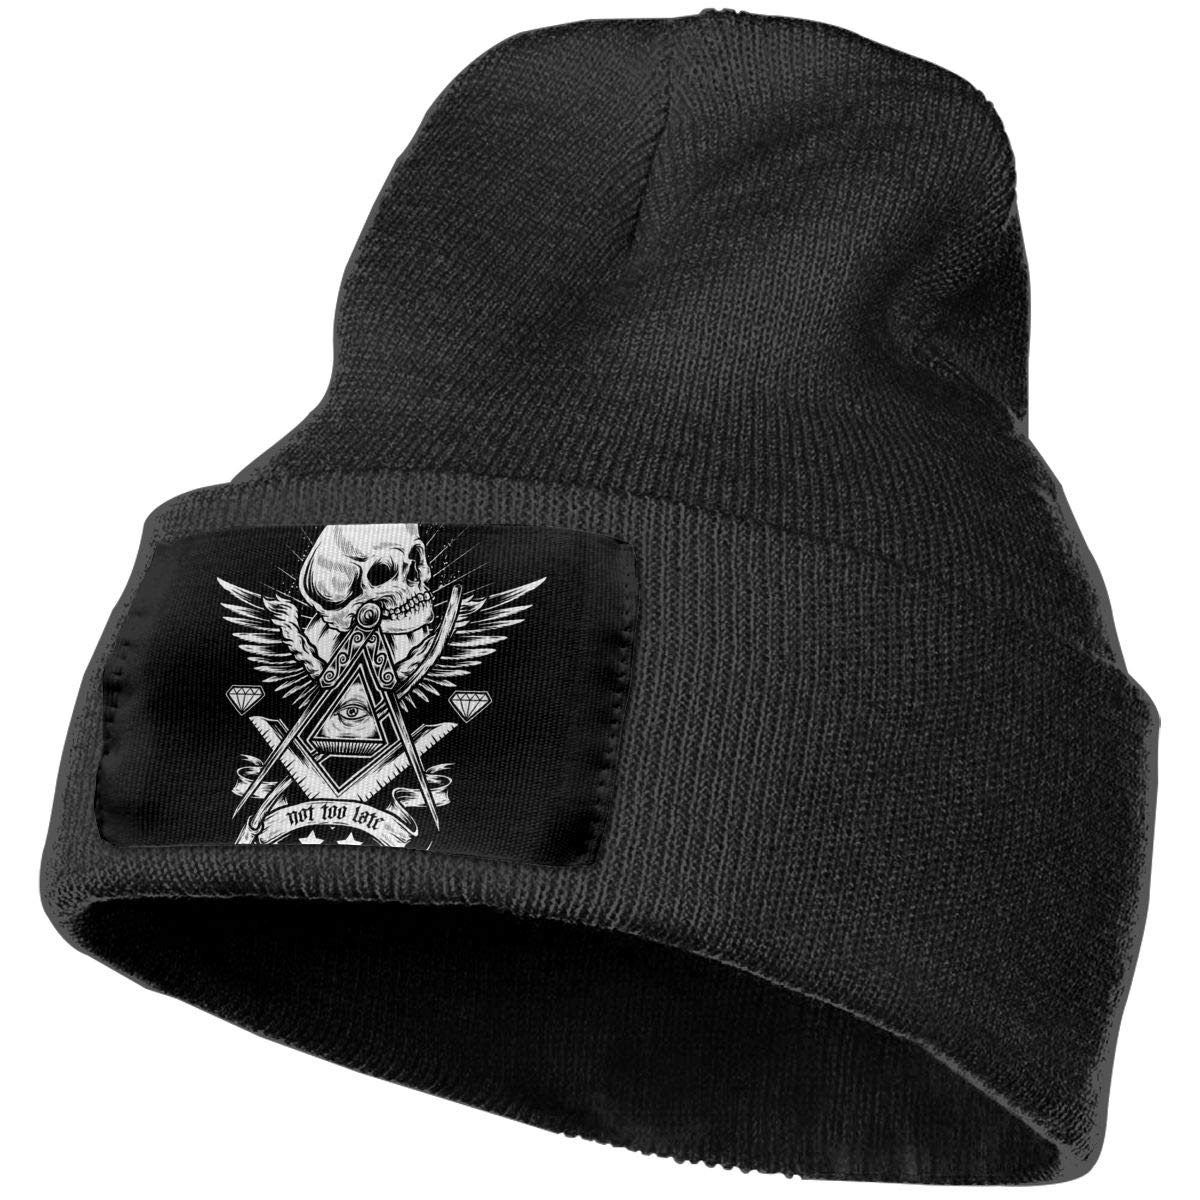 Fair Not Too Late Hat for Men and Women Winter Warm Hats Knit Slouchy Thick Skull Cap